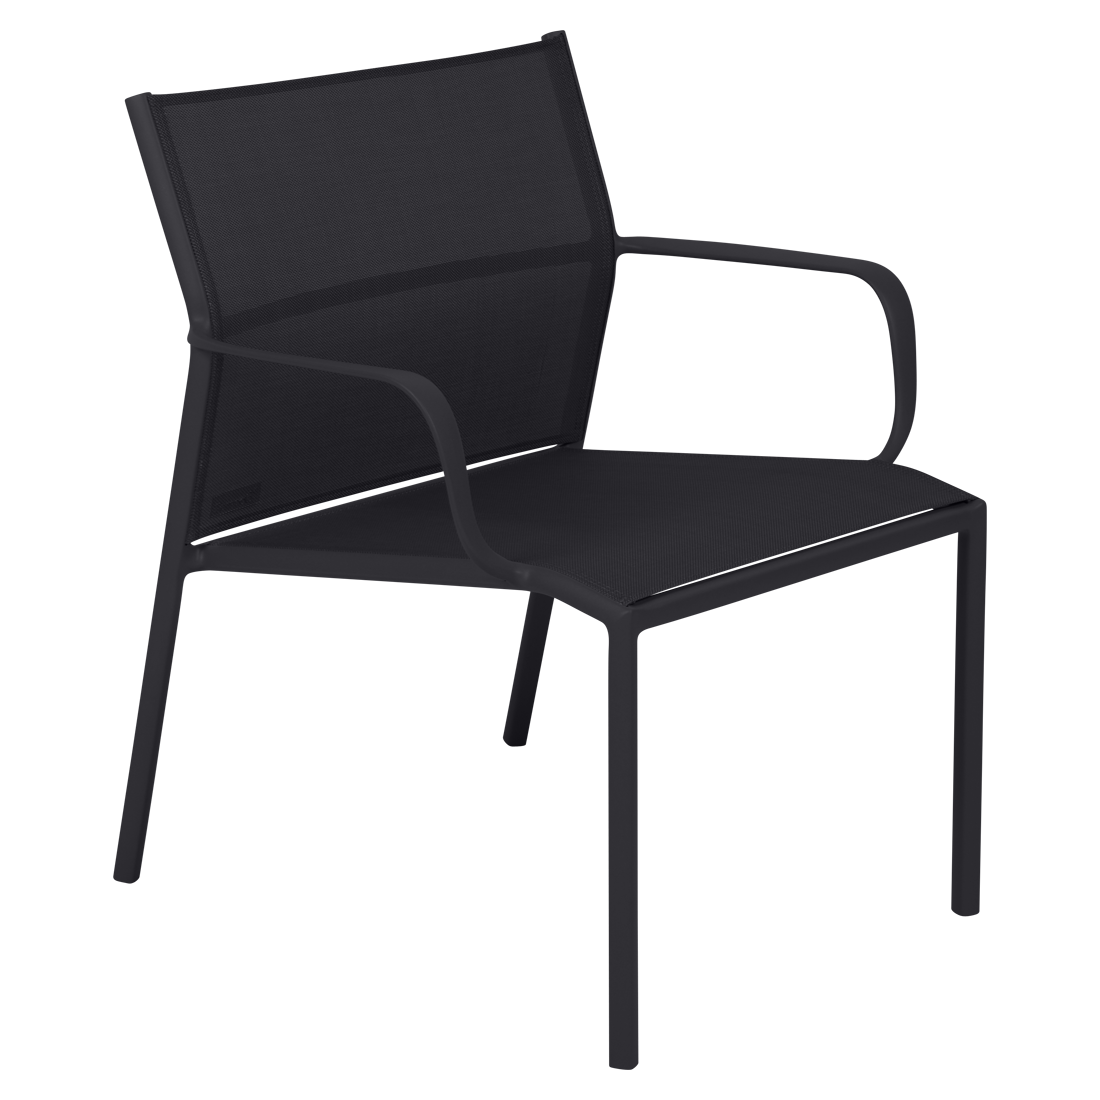 fauteuil bas cadiz fauteuil de jardin en toile. Black Bedroom Furniture Sets. Home Design Ideas